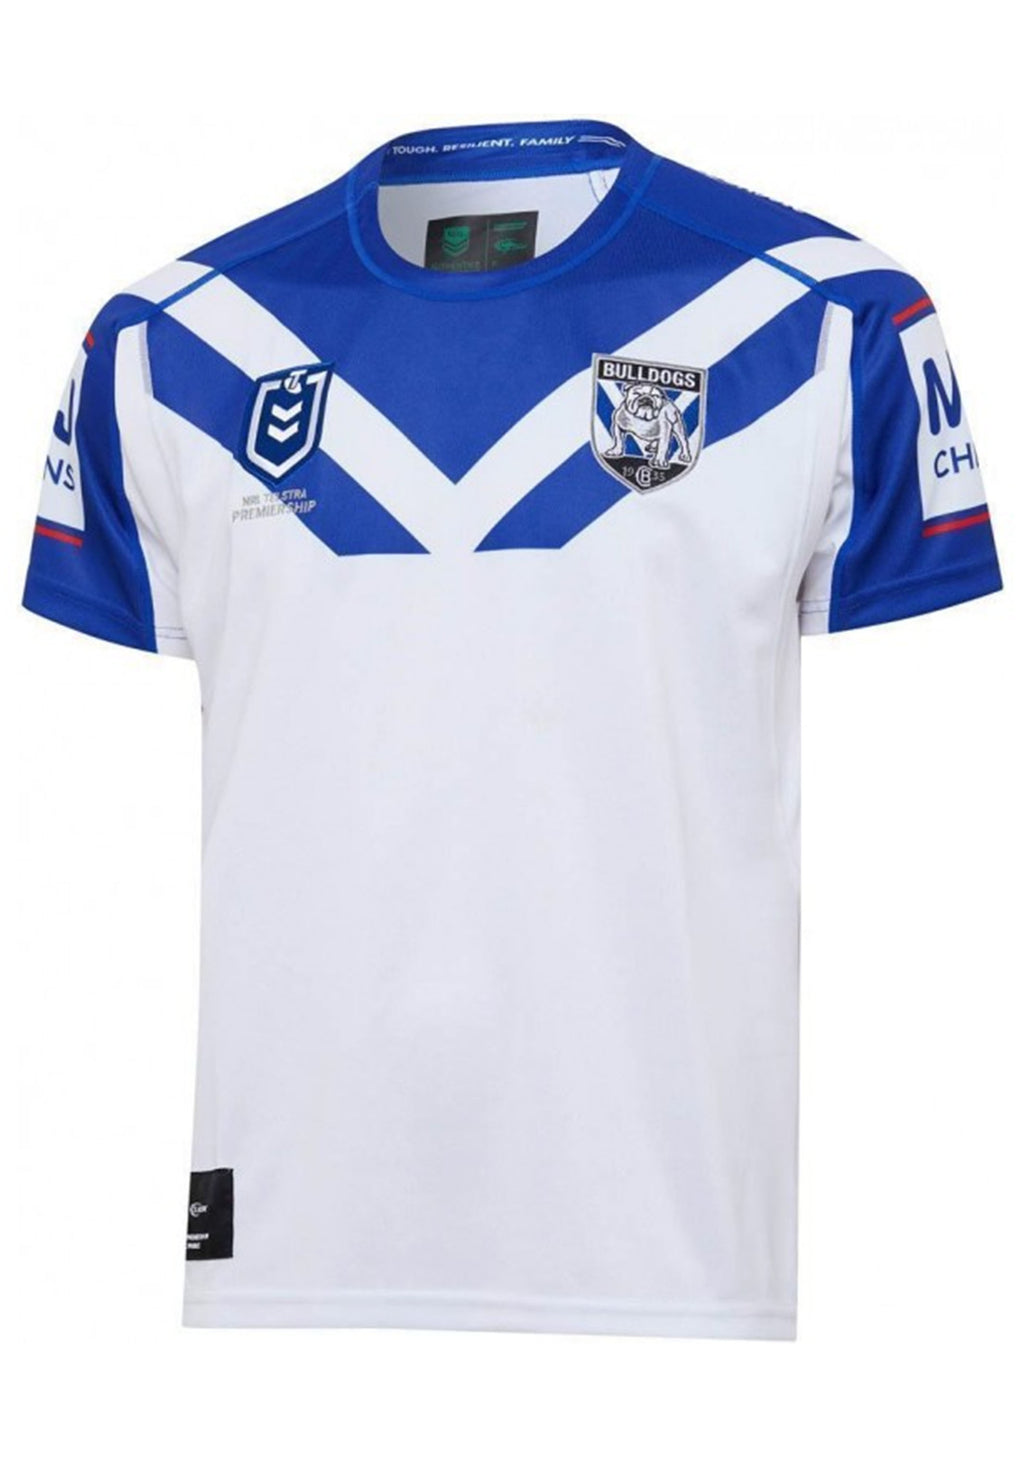 CANTERBURY-BANKSTOWN BULLDOGS 2020 MENS REPLICA HOME JERSEY <BR> BR20MHJ